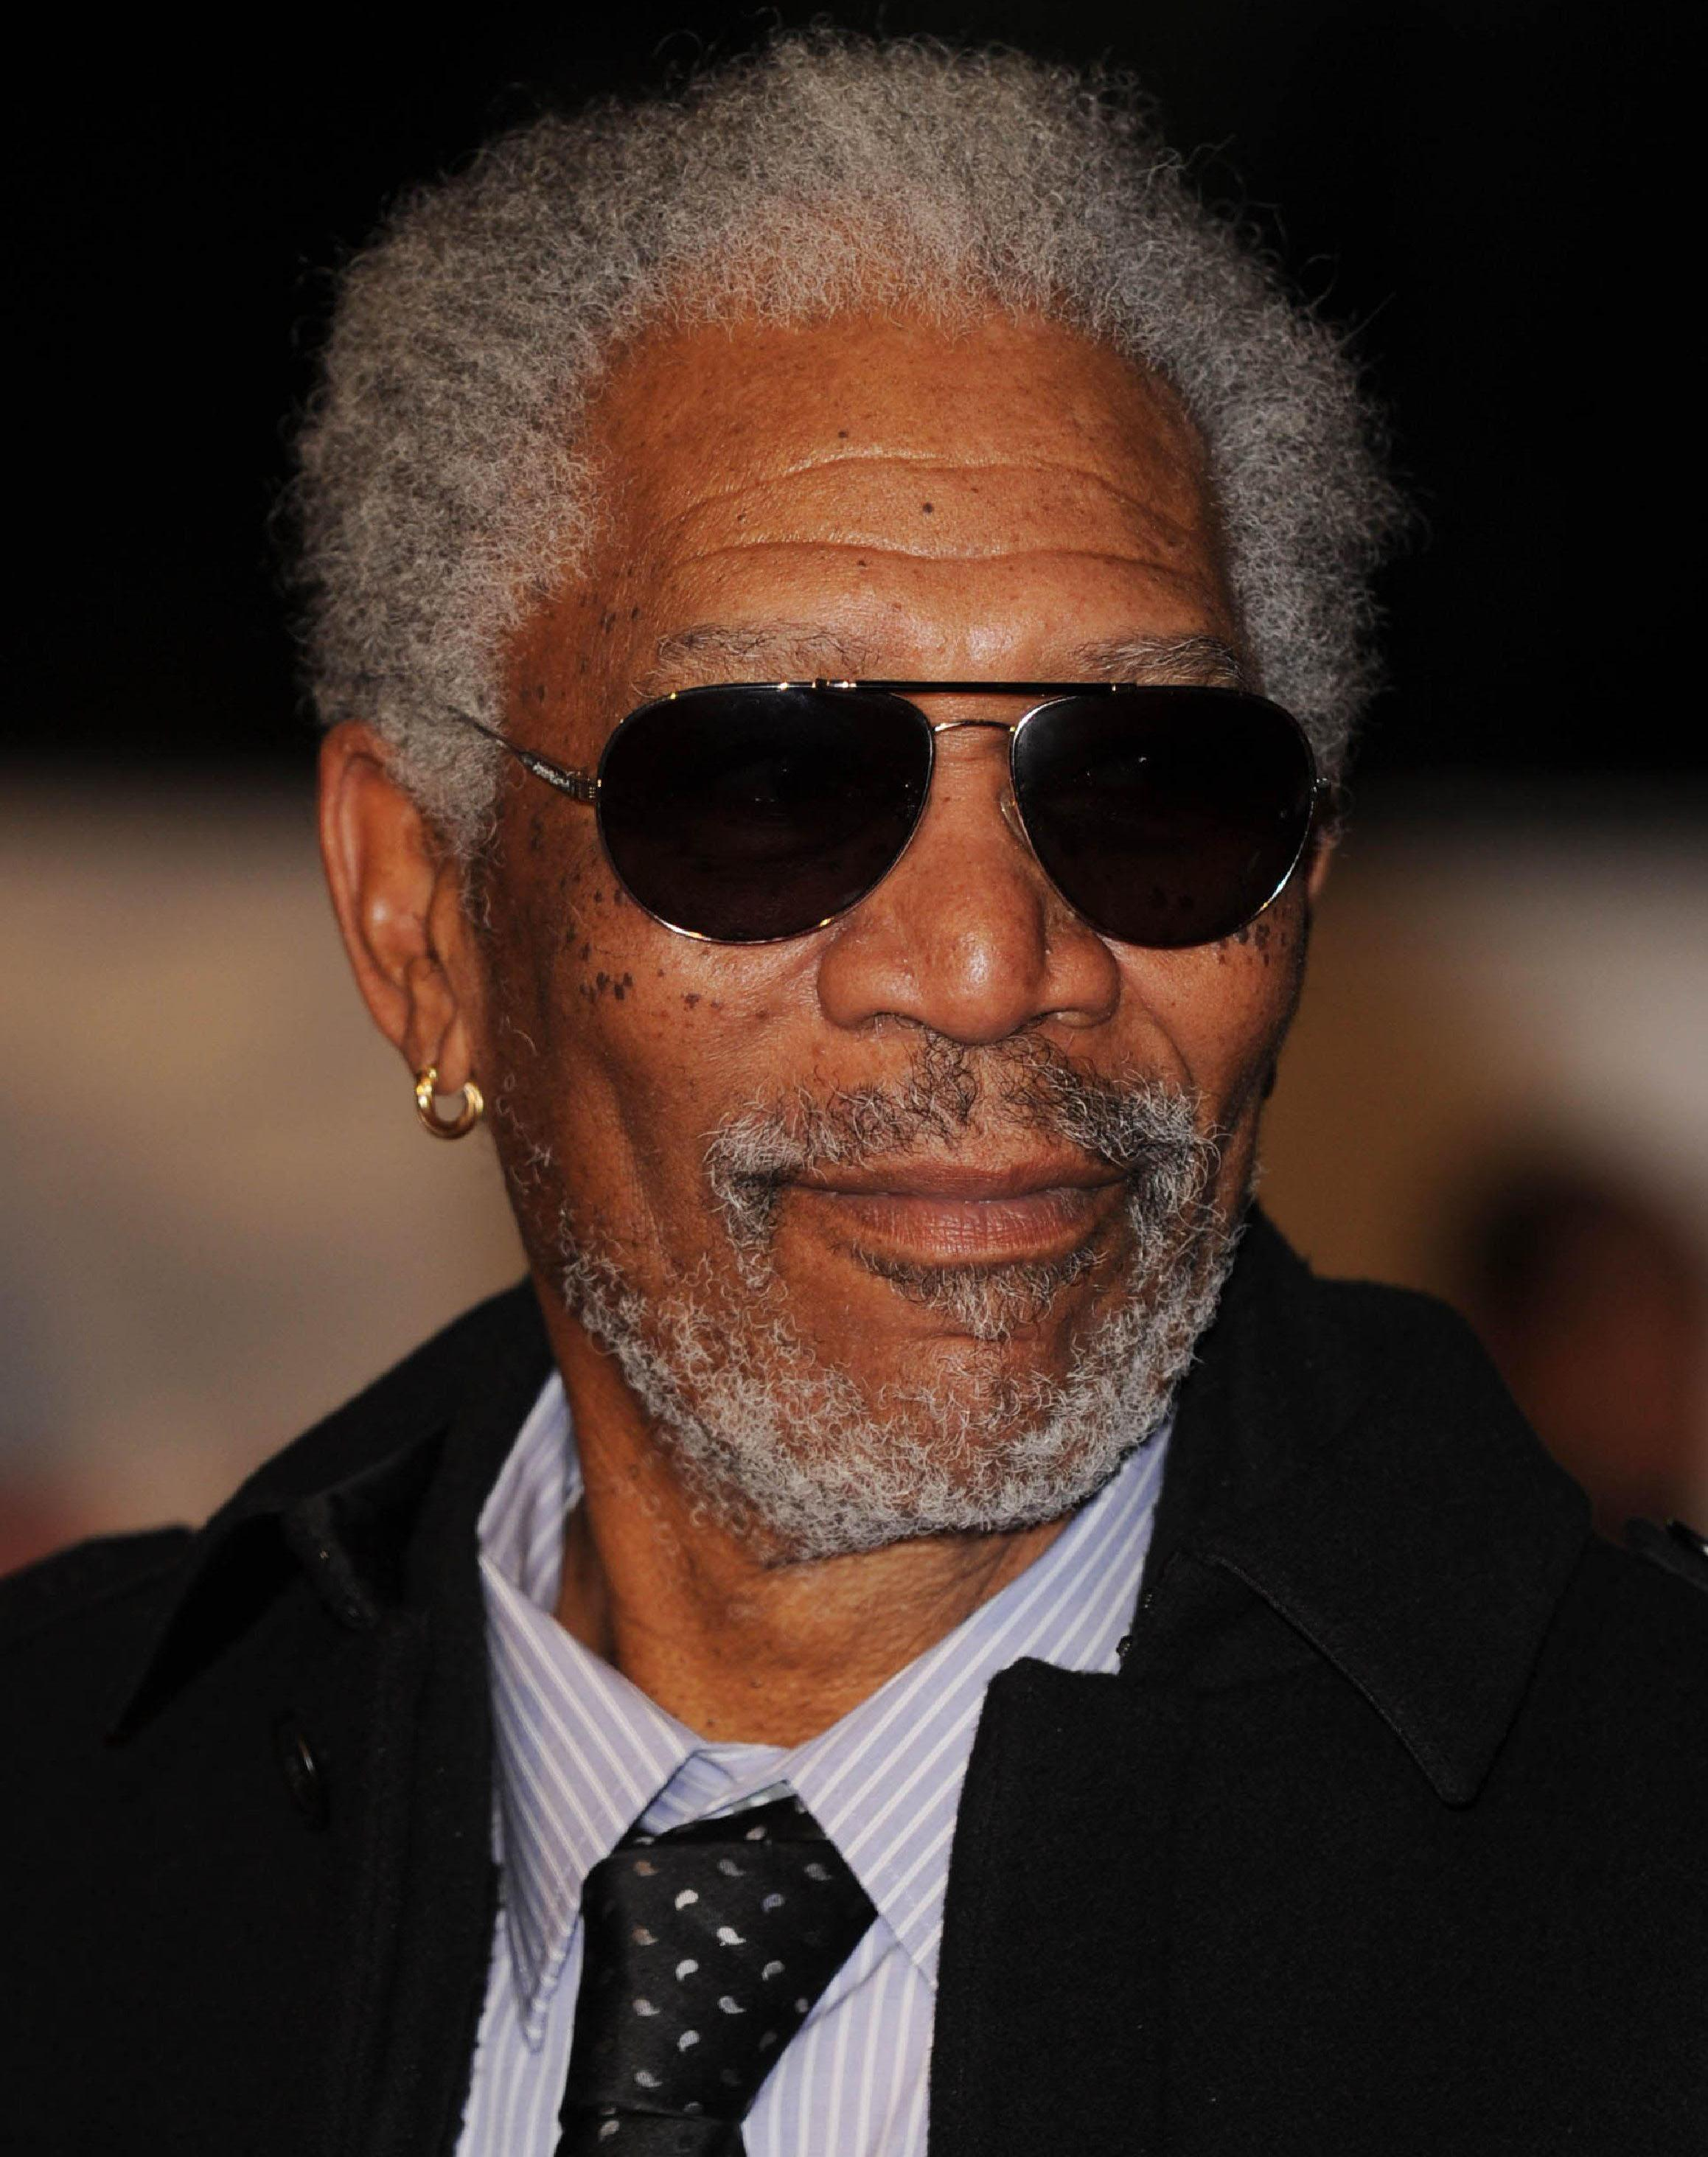 morgan freeman 25055 This article is written by JORDAN ZAKARIN at THE HUFFINGTON POST